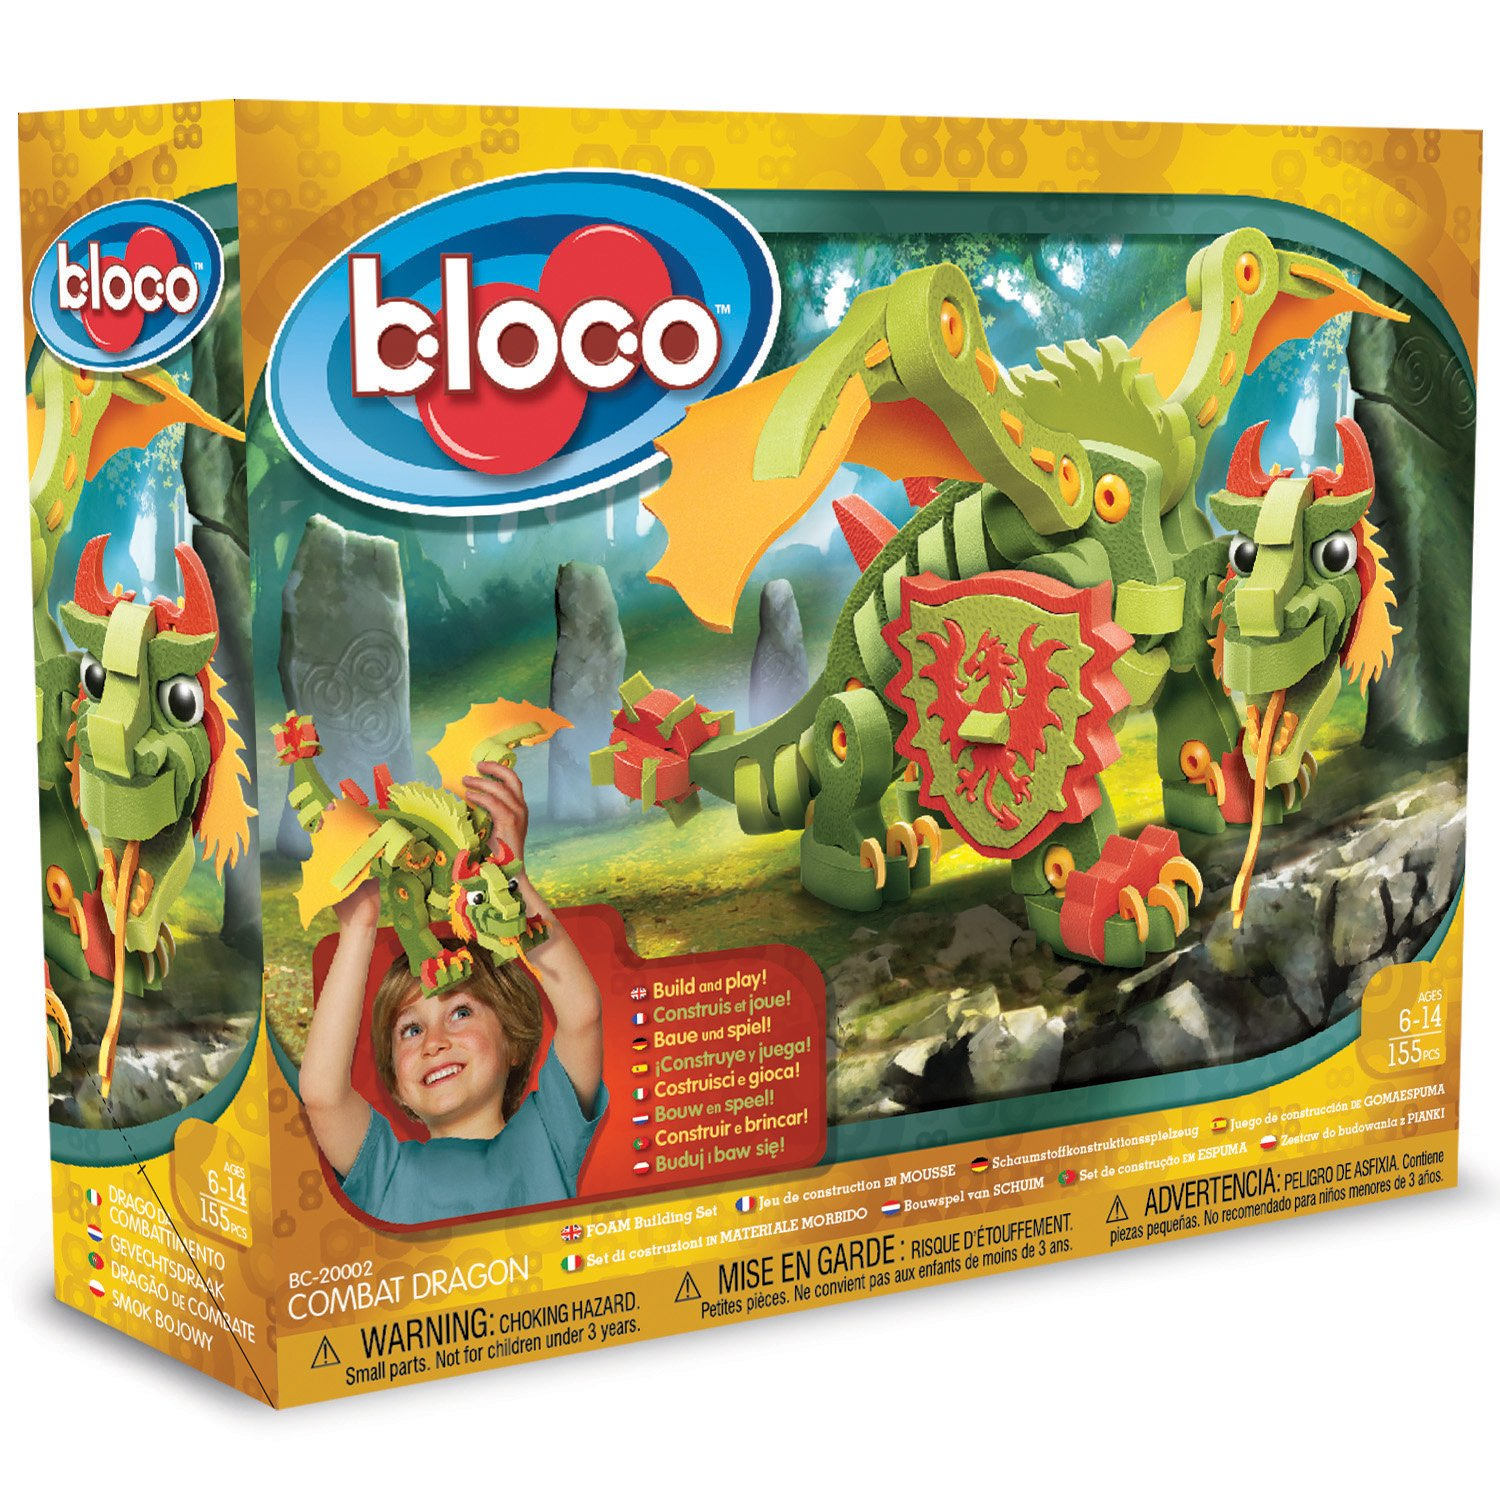 Bloco Toys Combat Dragon Building Kit Toy